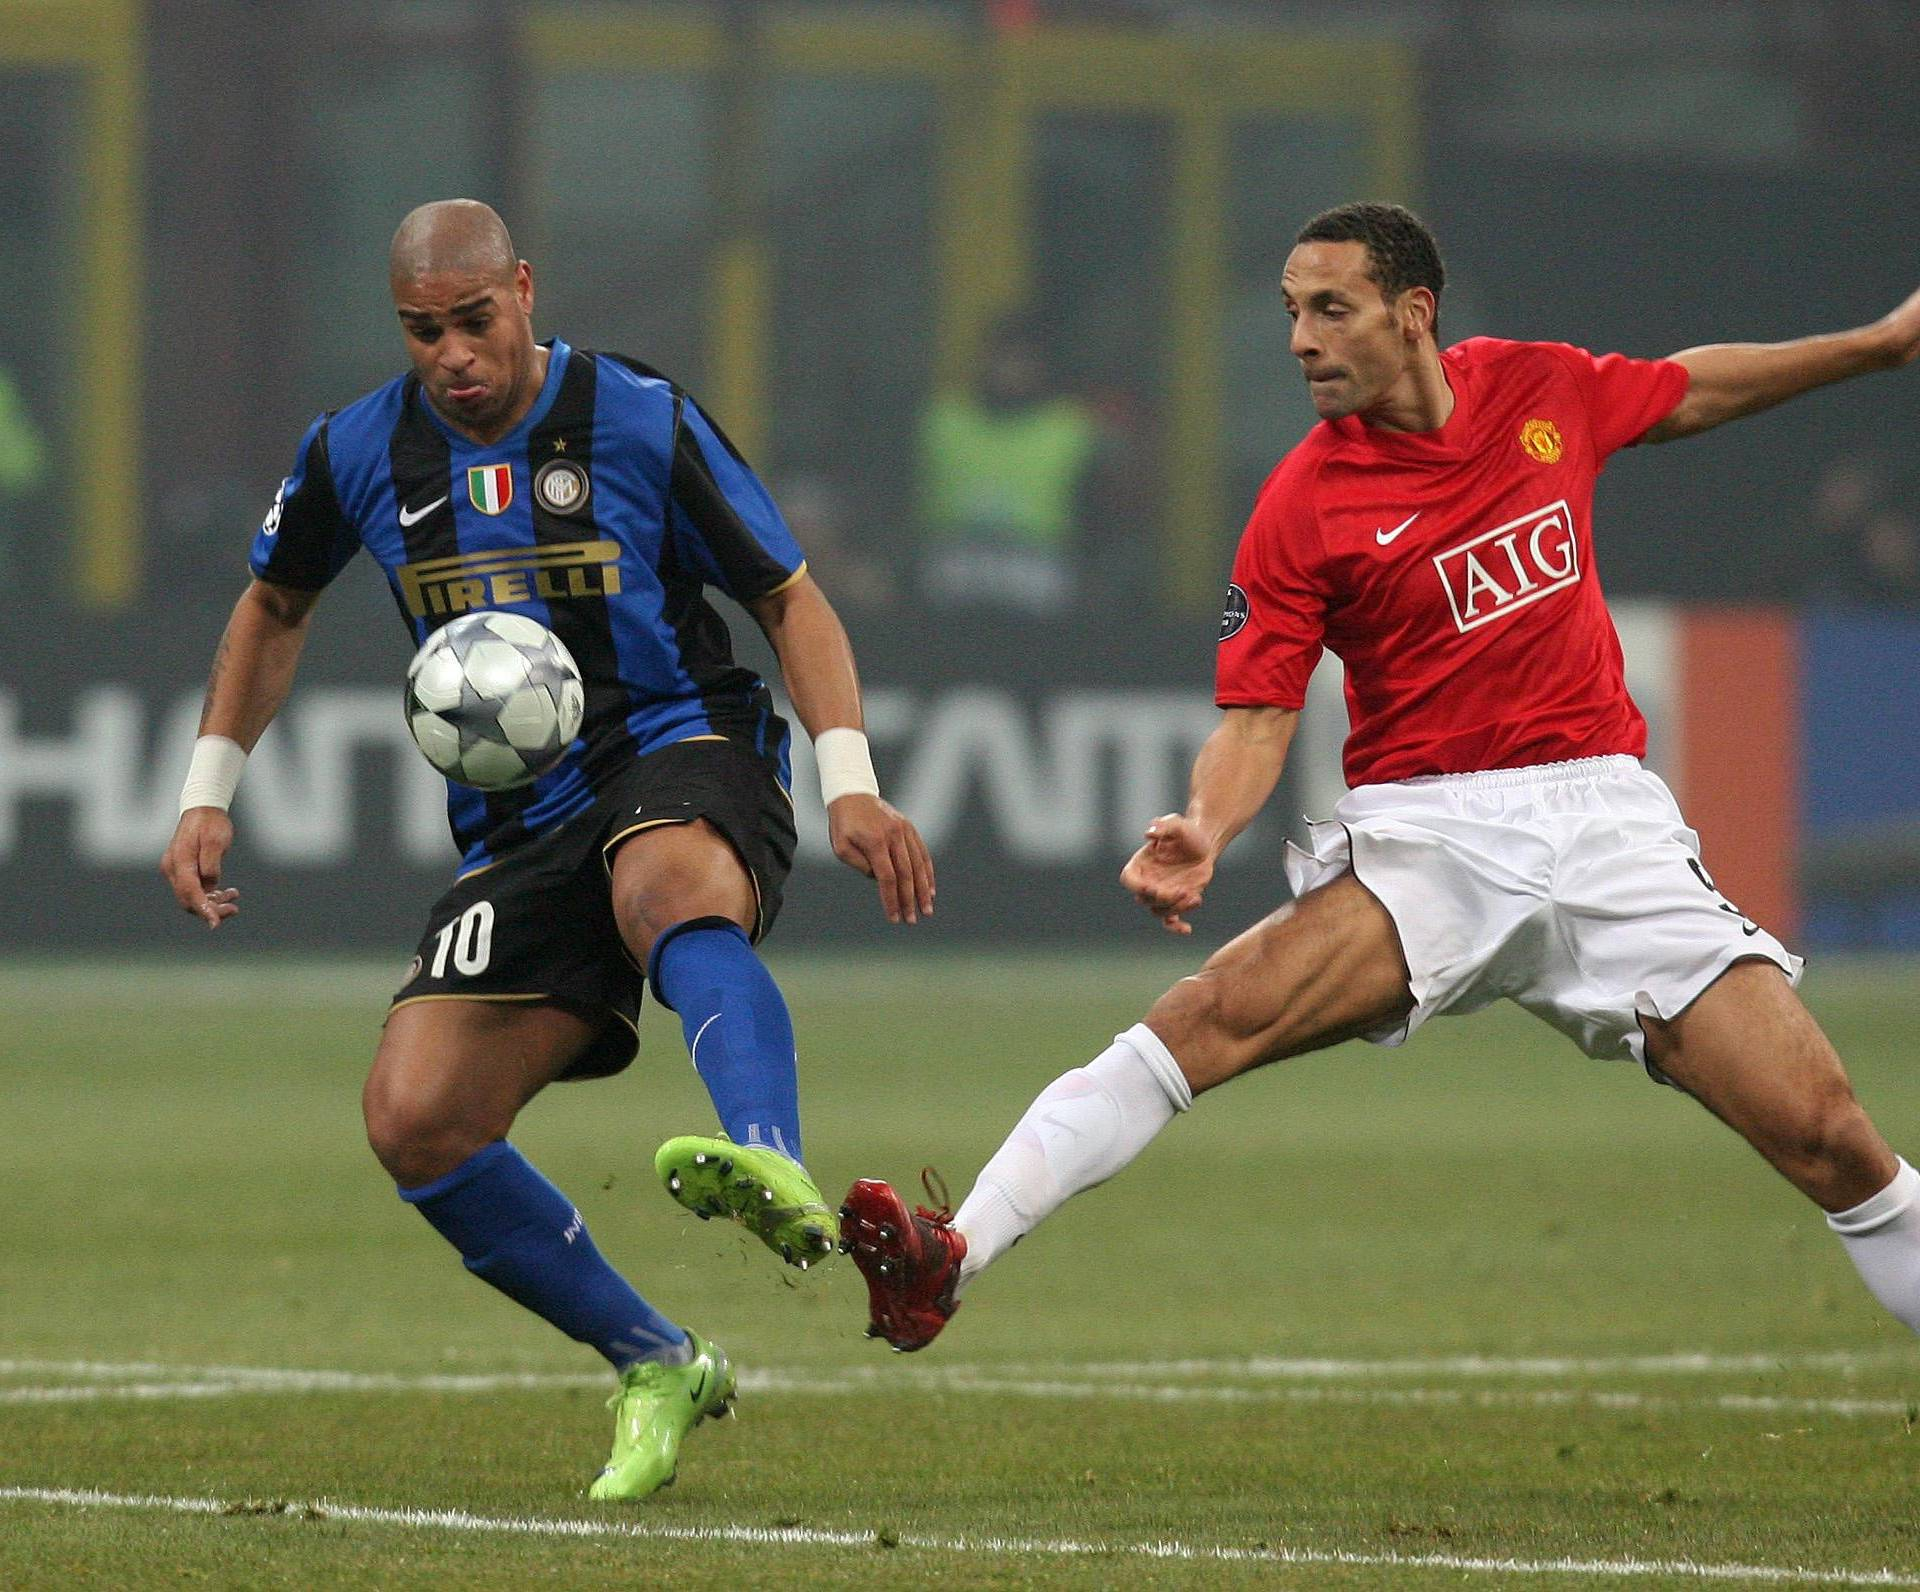 Soccer - UEFA Champions League - First Knockout Round - First Leg - Inter Milan v Manchester United - Stadio Giuseppe Meazza